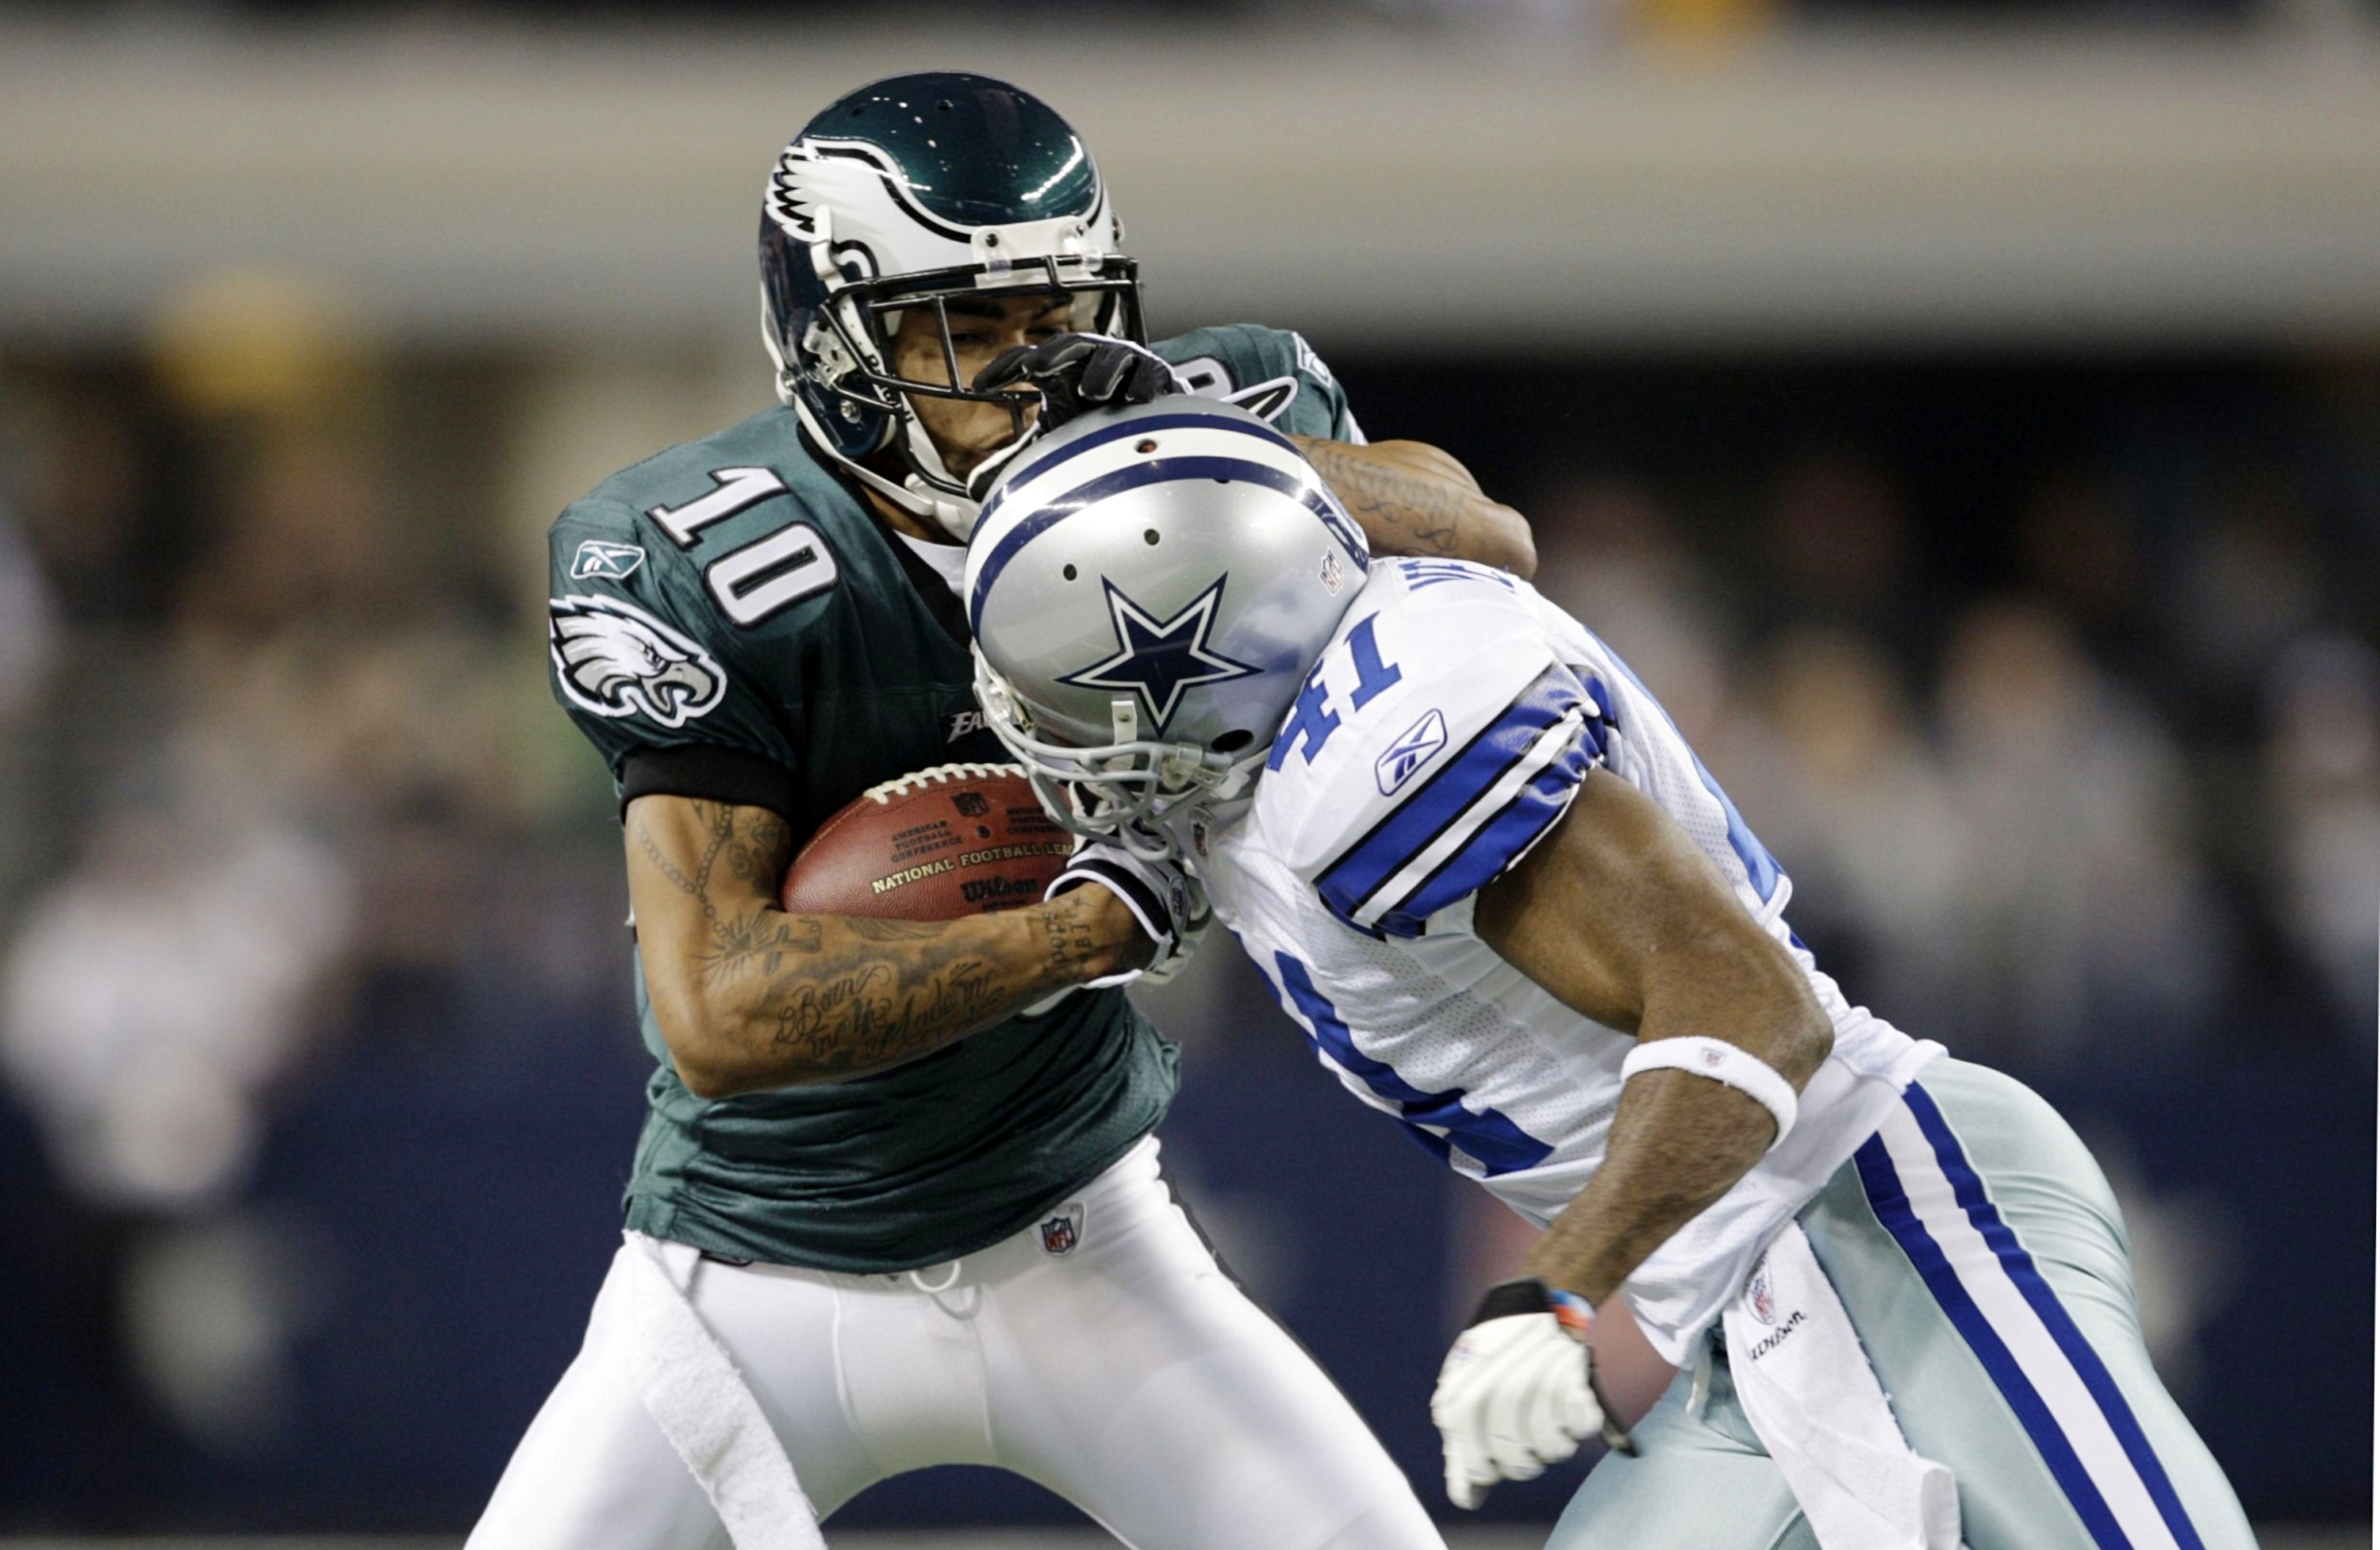 ARLINGTON, TX - JANUARY 9:  Wide receiver DeSean Jackson #10 of the Philadelphia Eagles attempts to make a move on Terence Newman #41 of the Dallas Cowboys in the second half during the 2010 NFC wild-card playoff game at Cowboys Stadium on January 9, 2010